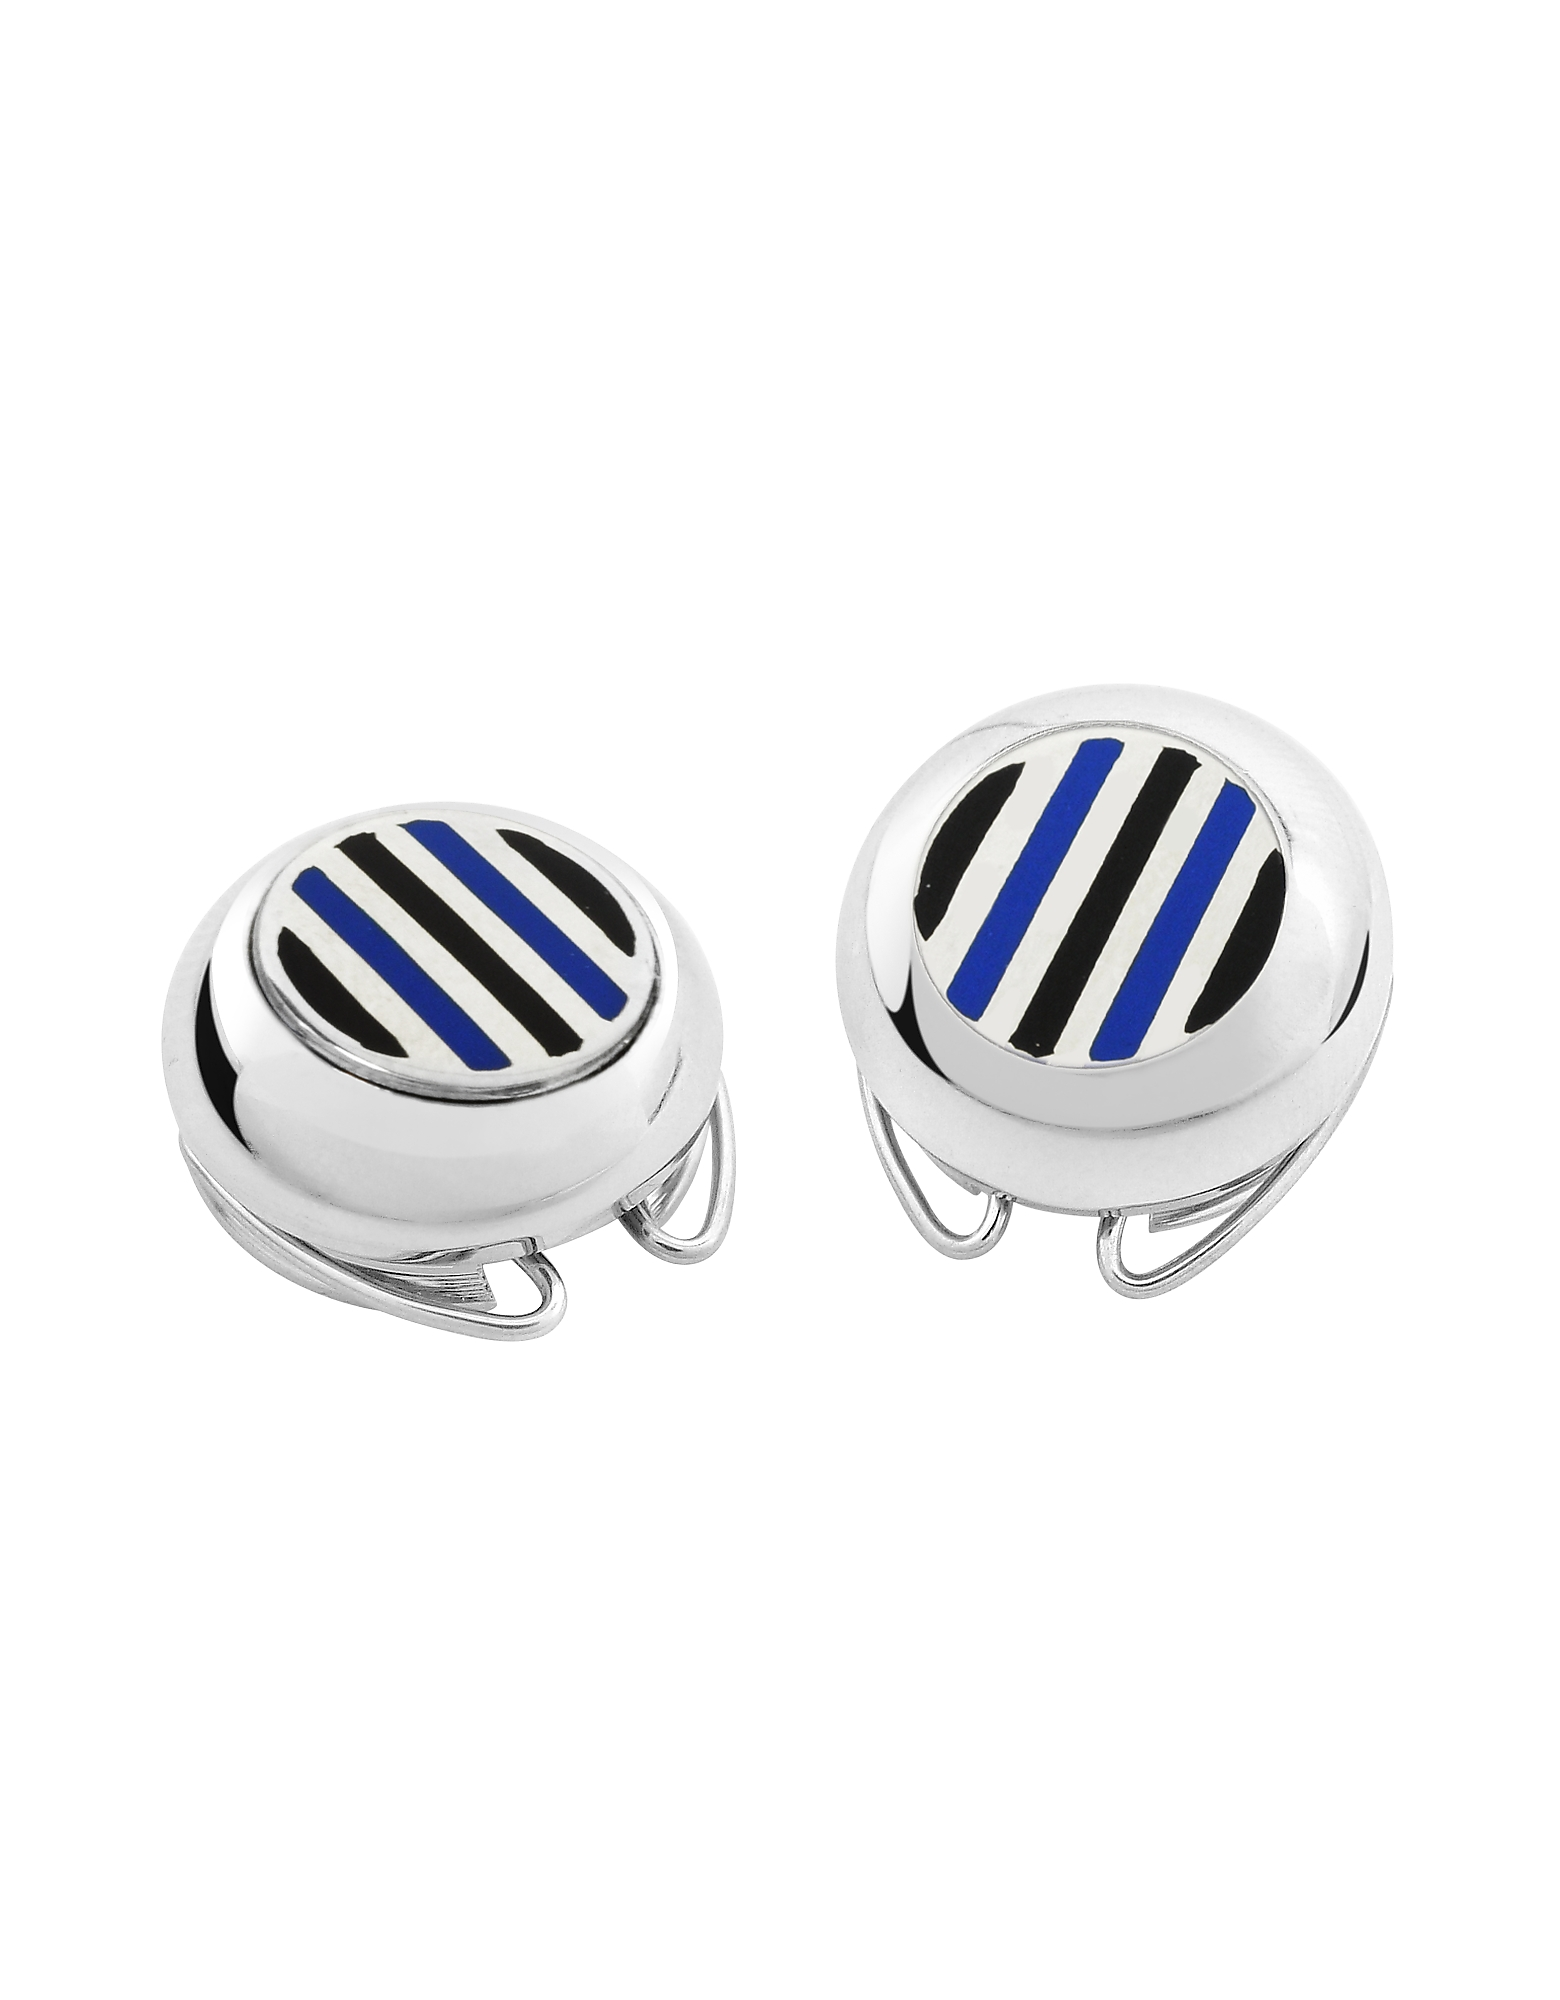 Forzieri Button Covers, Striped Silver Plated Button Covers